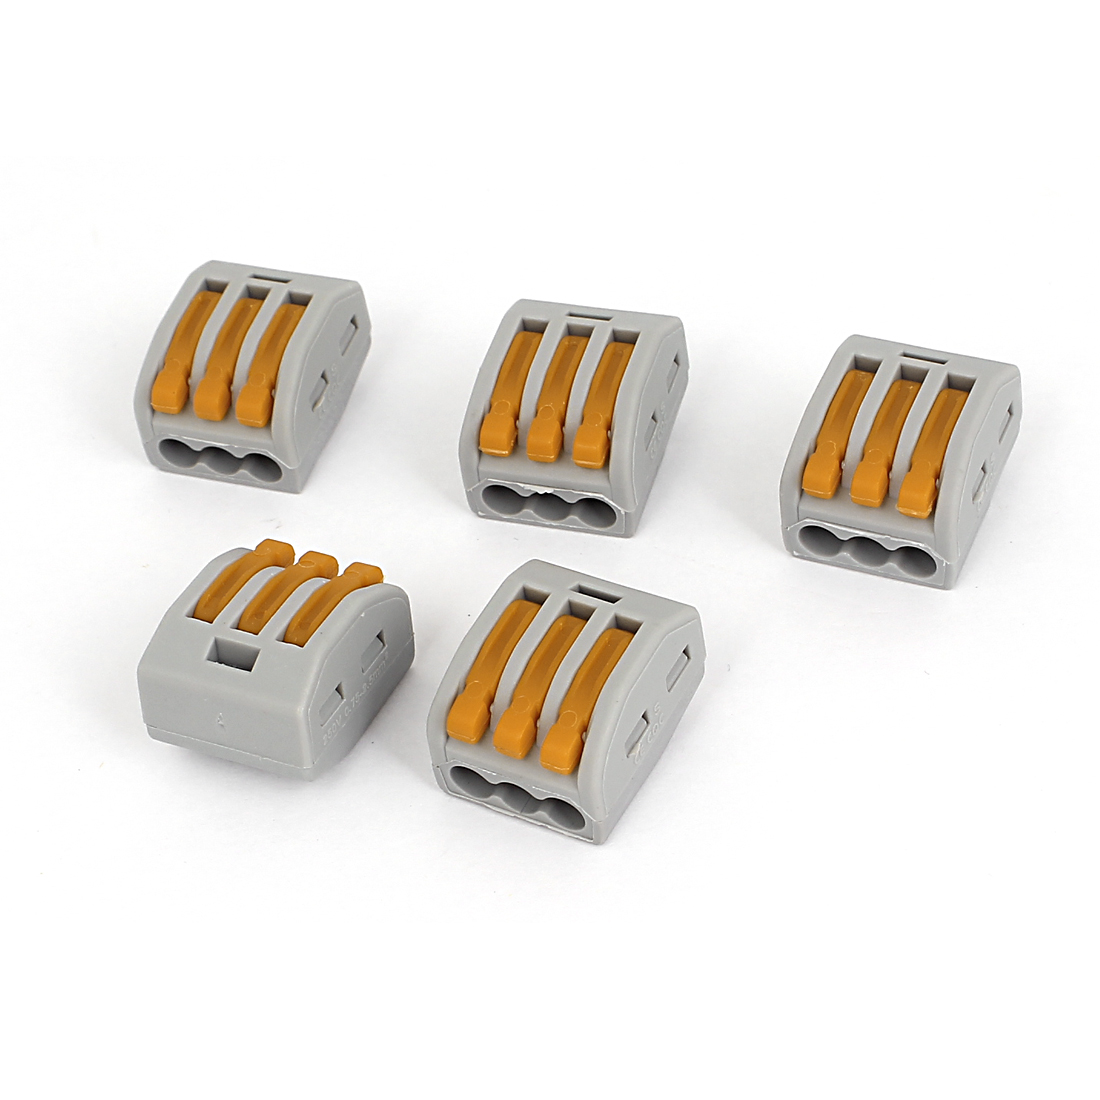 AC400V 32A 0.08-2.5mm2 0.08-4.0mm2 3 Way Terminal Block Push Wire Connector 5Pcs